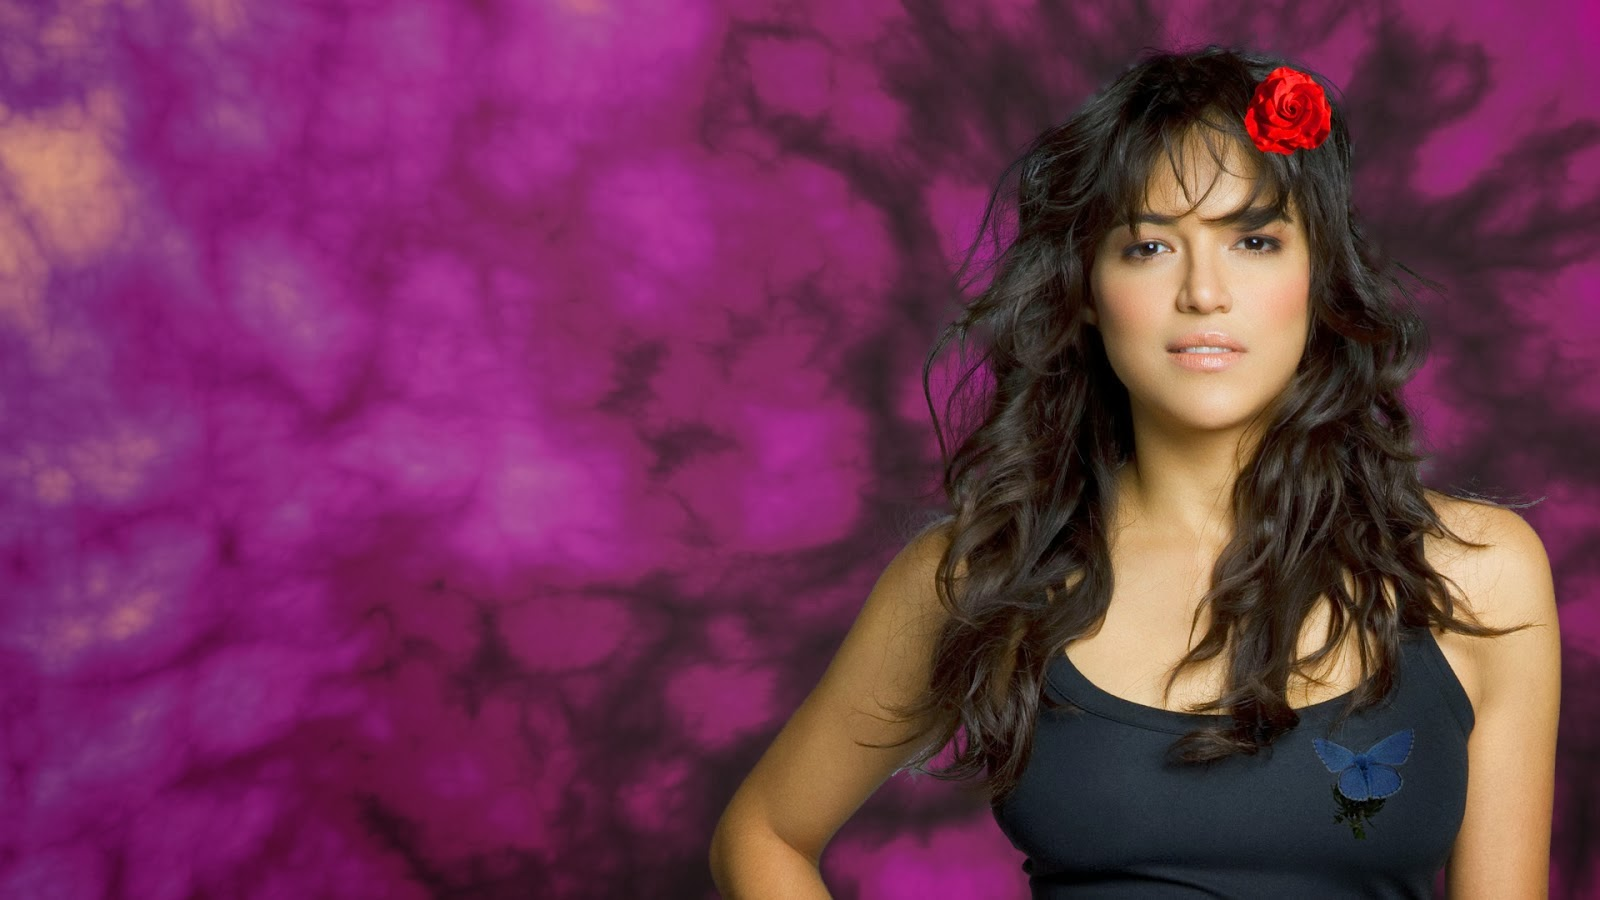 Michelle Rodriguez With Rose 18